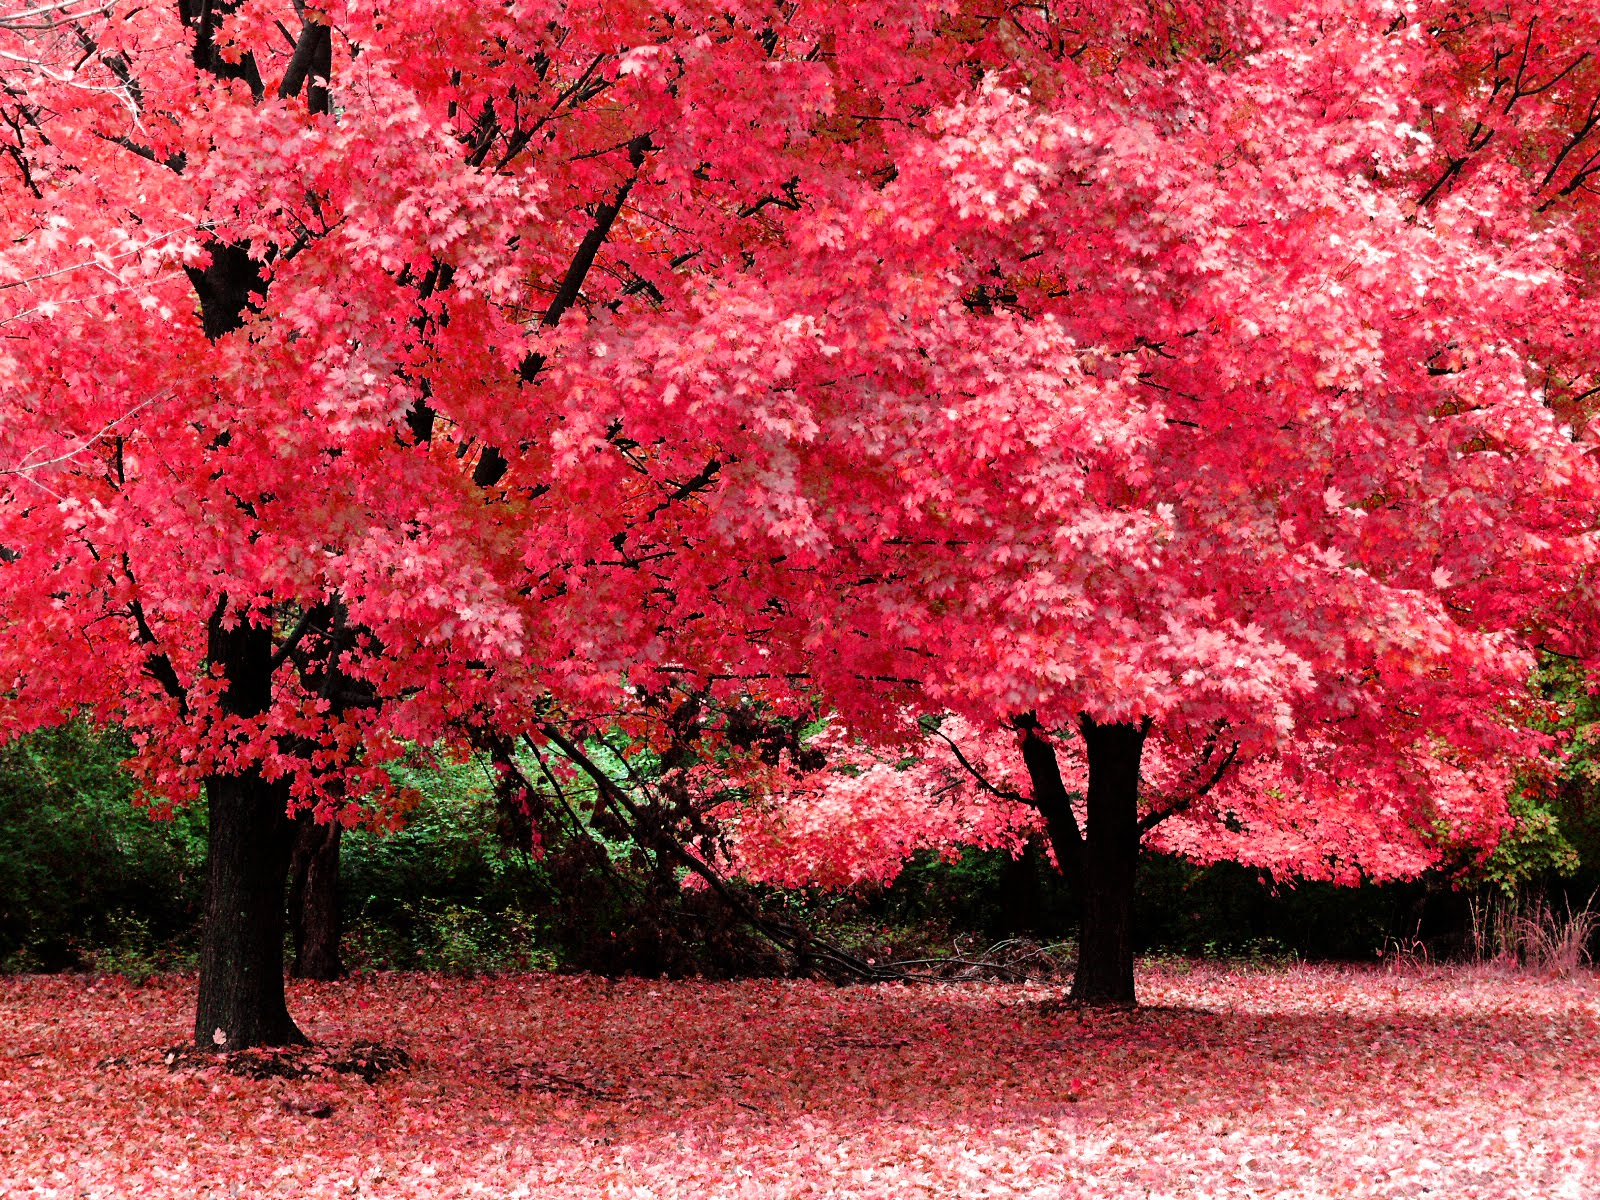 ws Pink trees 1600x1200 ws Pink and white trees 1600x1200 hd wallpapers indian global tamil sex in tress sexy roads nude girls arabic sexy girls in trees high quality wallpapers pink rose white black red r Gay Size Queens Erotic Stories Hardcore   Buttfuck Porn